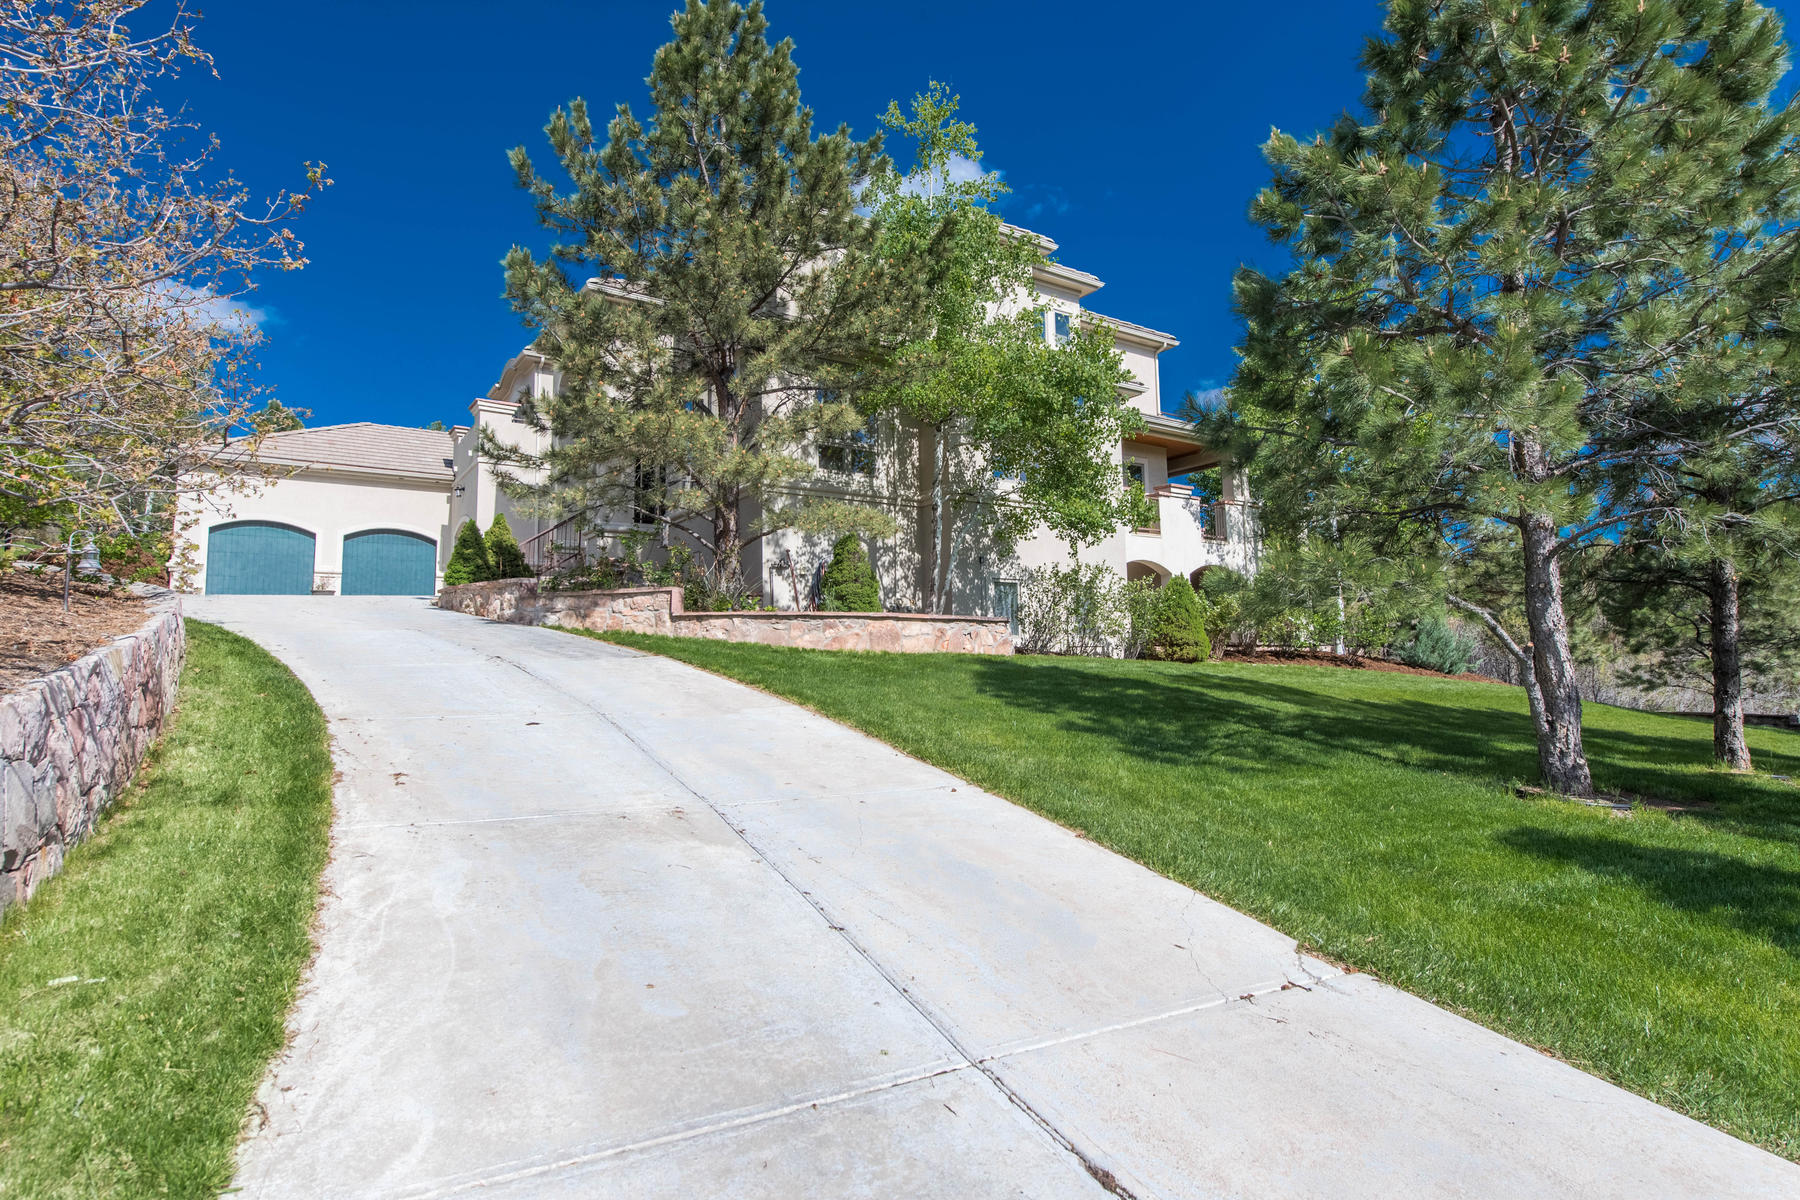 Single Family Home for Active at 937 Aztec Dr 937 Aztec Dr Castle Rock, Colorado 80108 United States